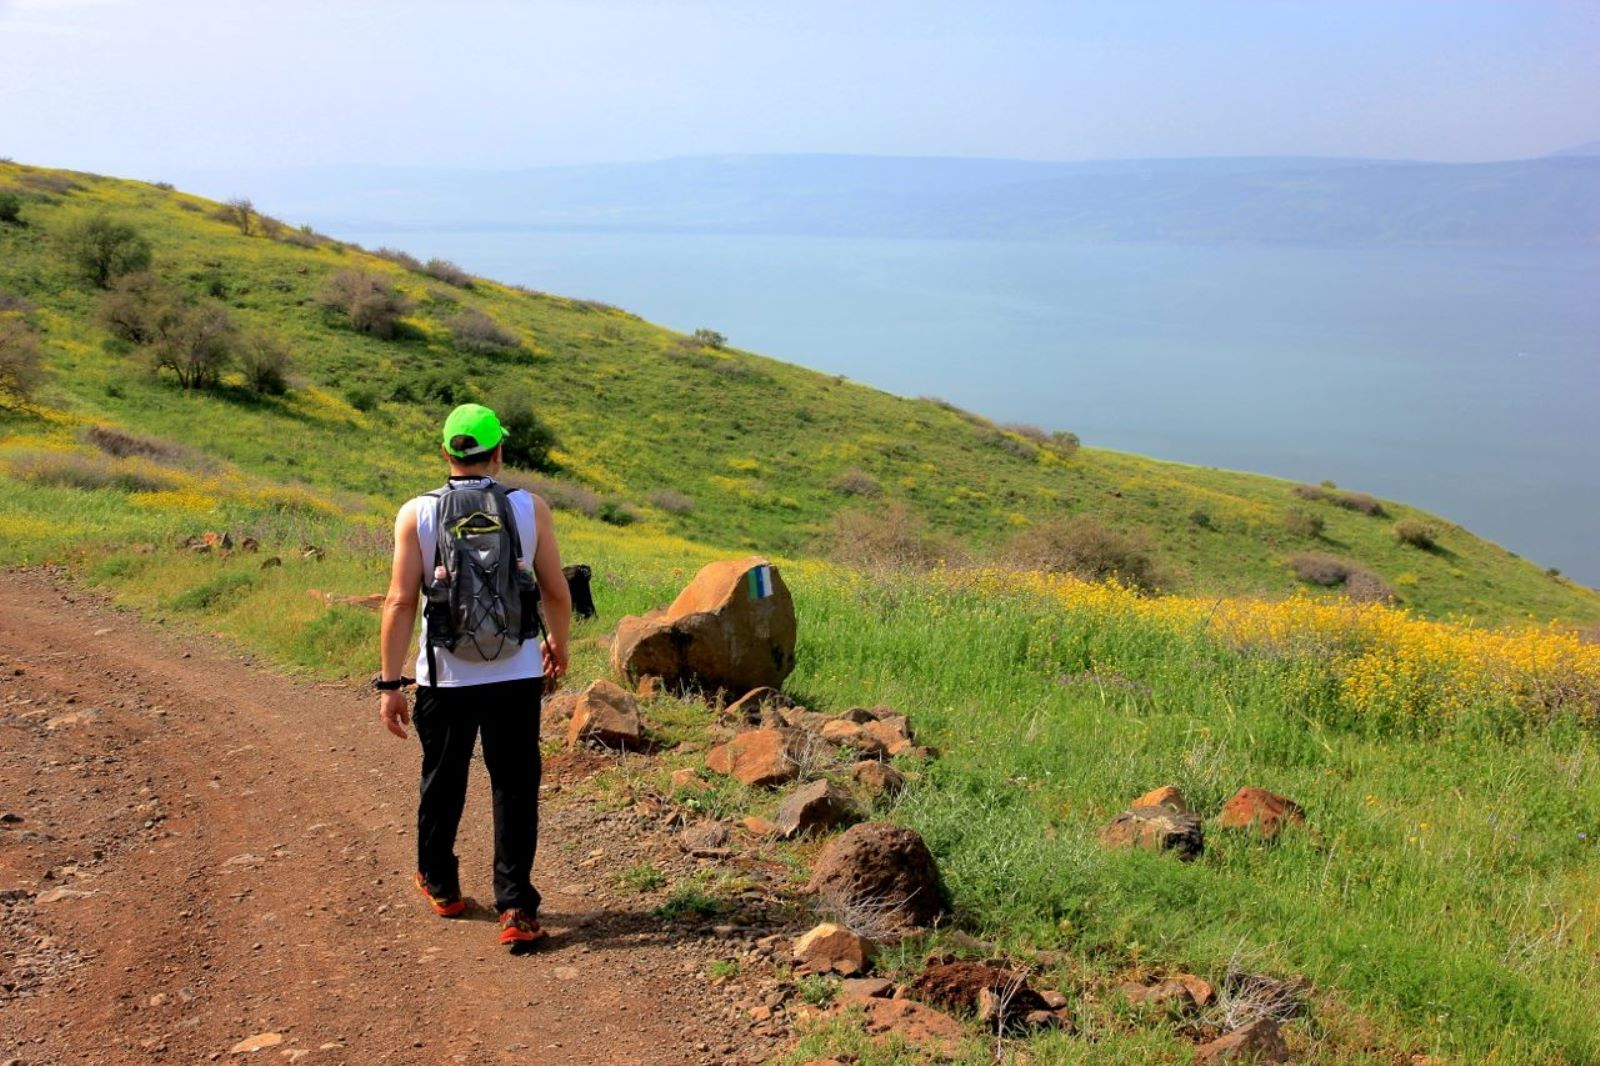 American journalist Todd Pitock on the Golan Trail. Photo by Israel Eshed